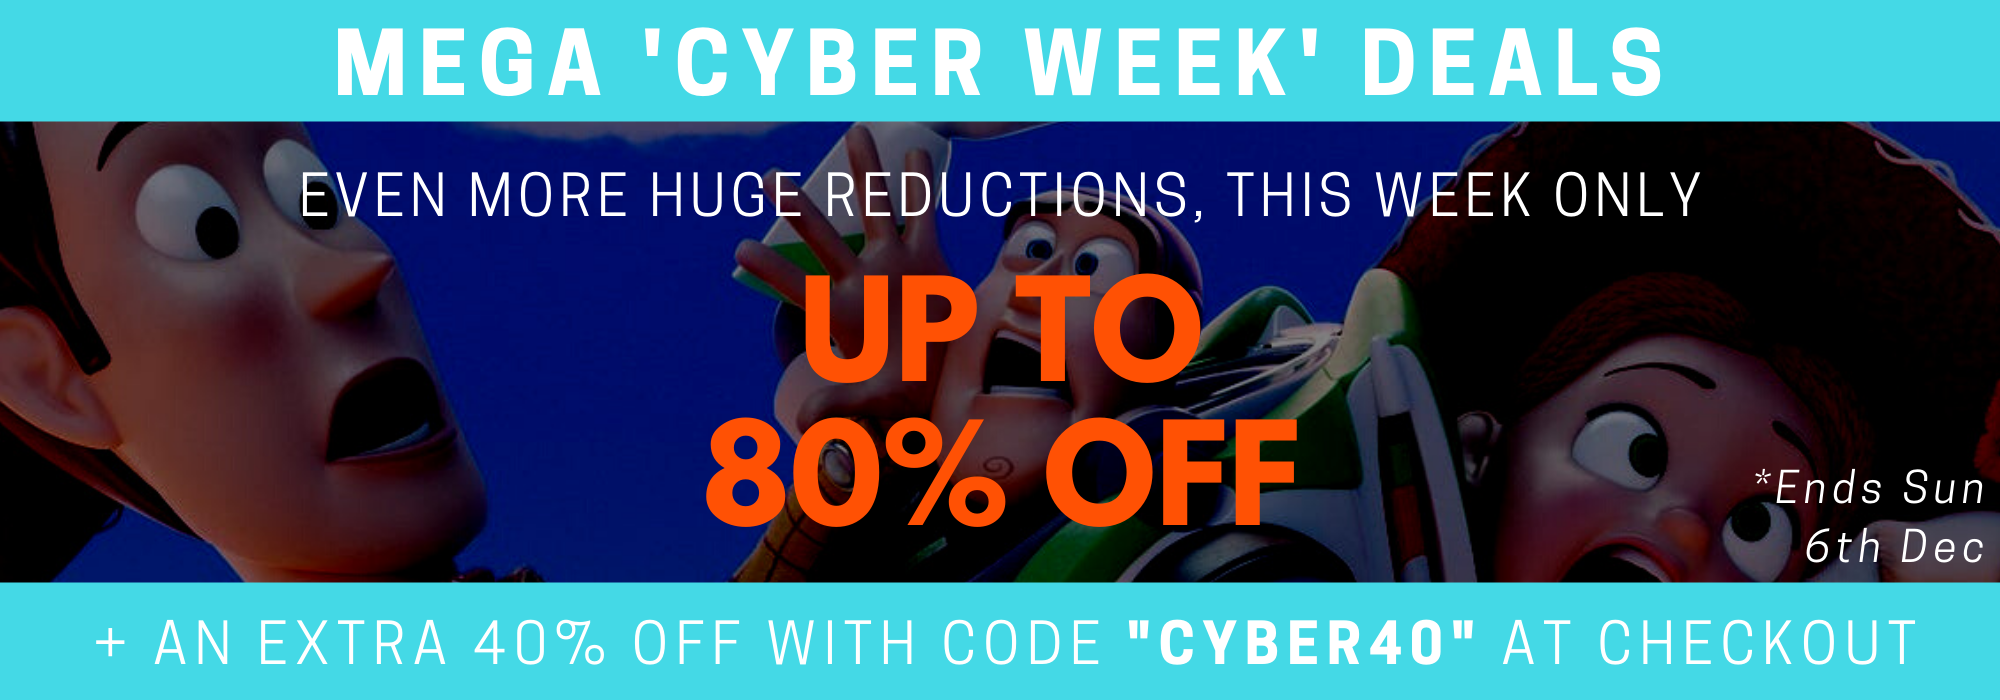 Cyber Toy Deals